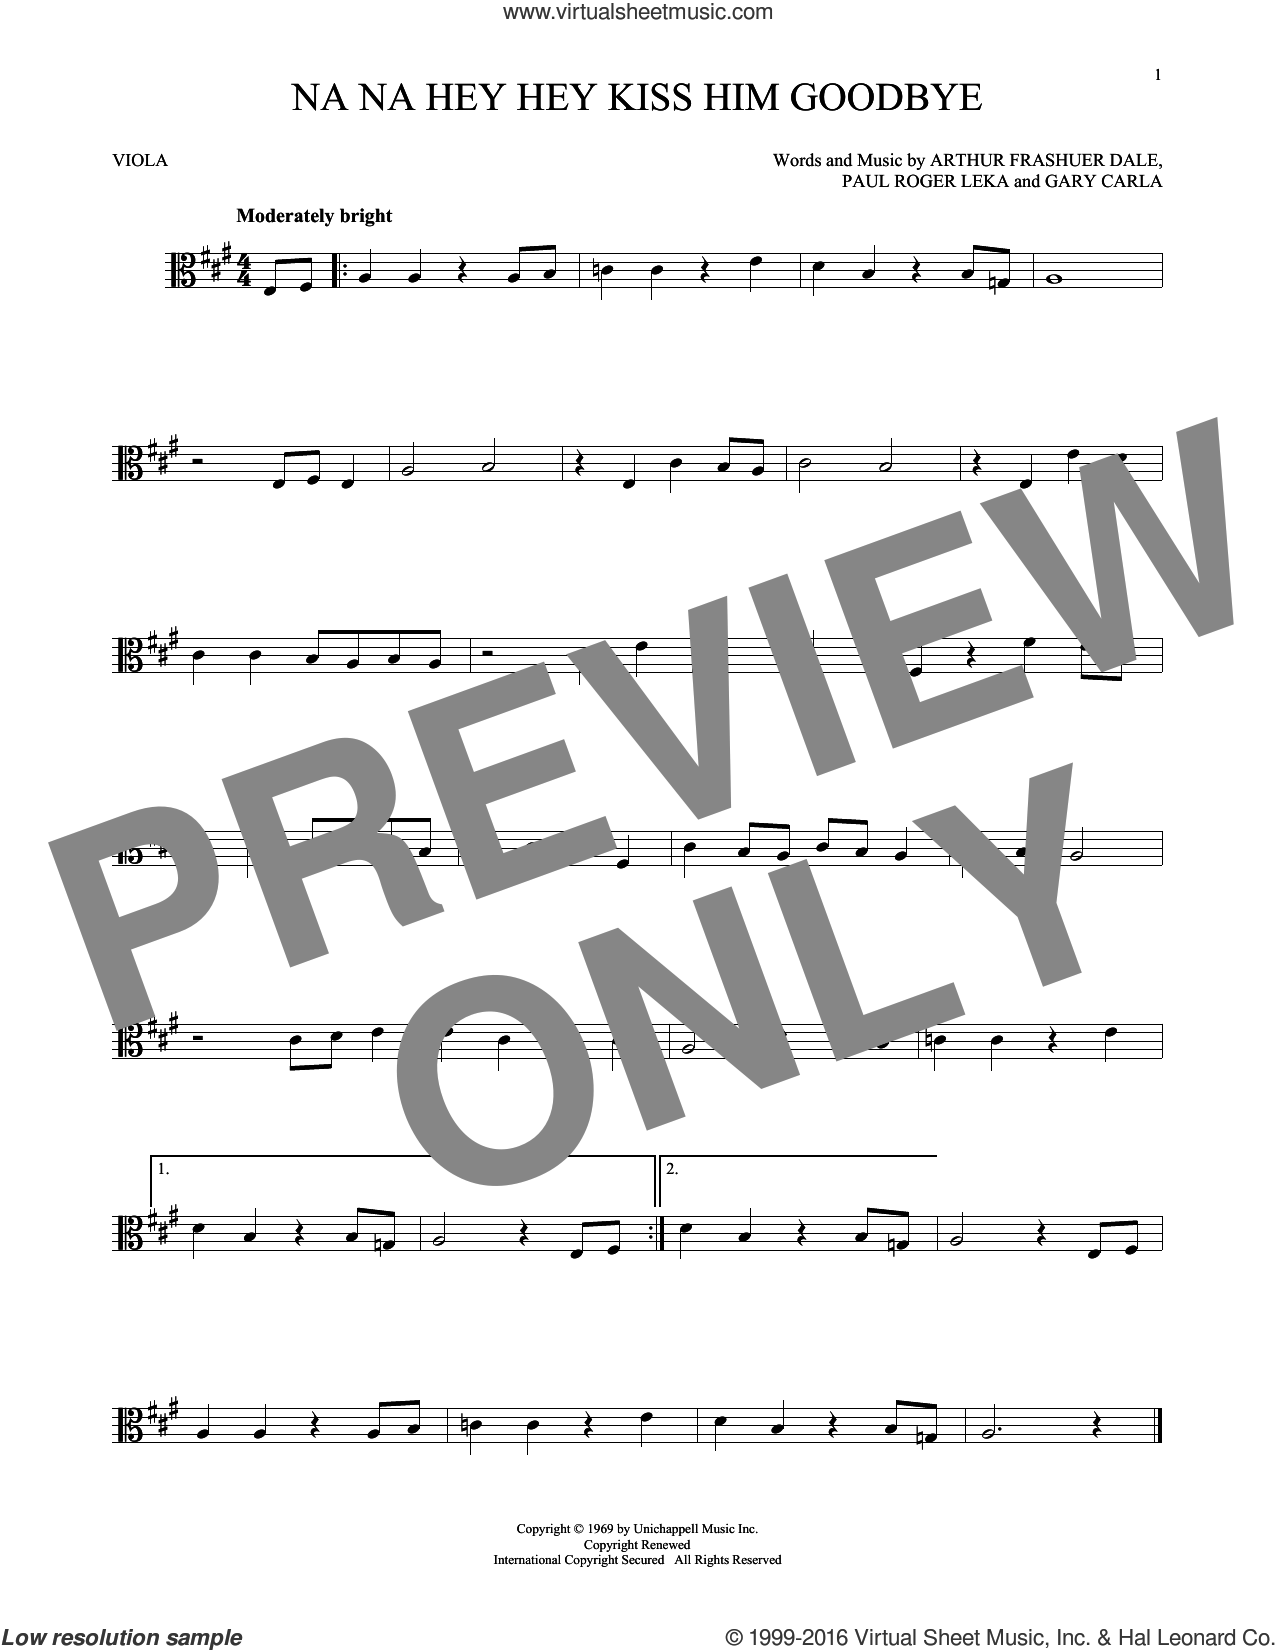 Na Na Hey Hey Kiss Him Goodbye sheet music for viola solo by Steam, Dale Frashuer, Gary De Carlo and Paul Leka, intermediate skill level